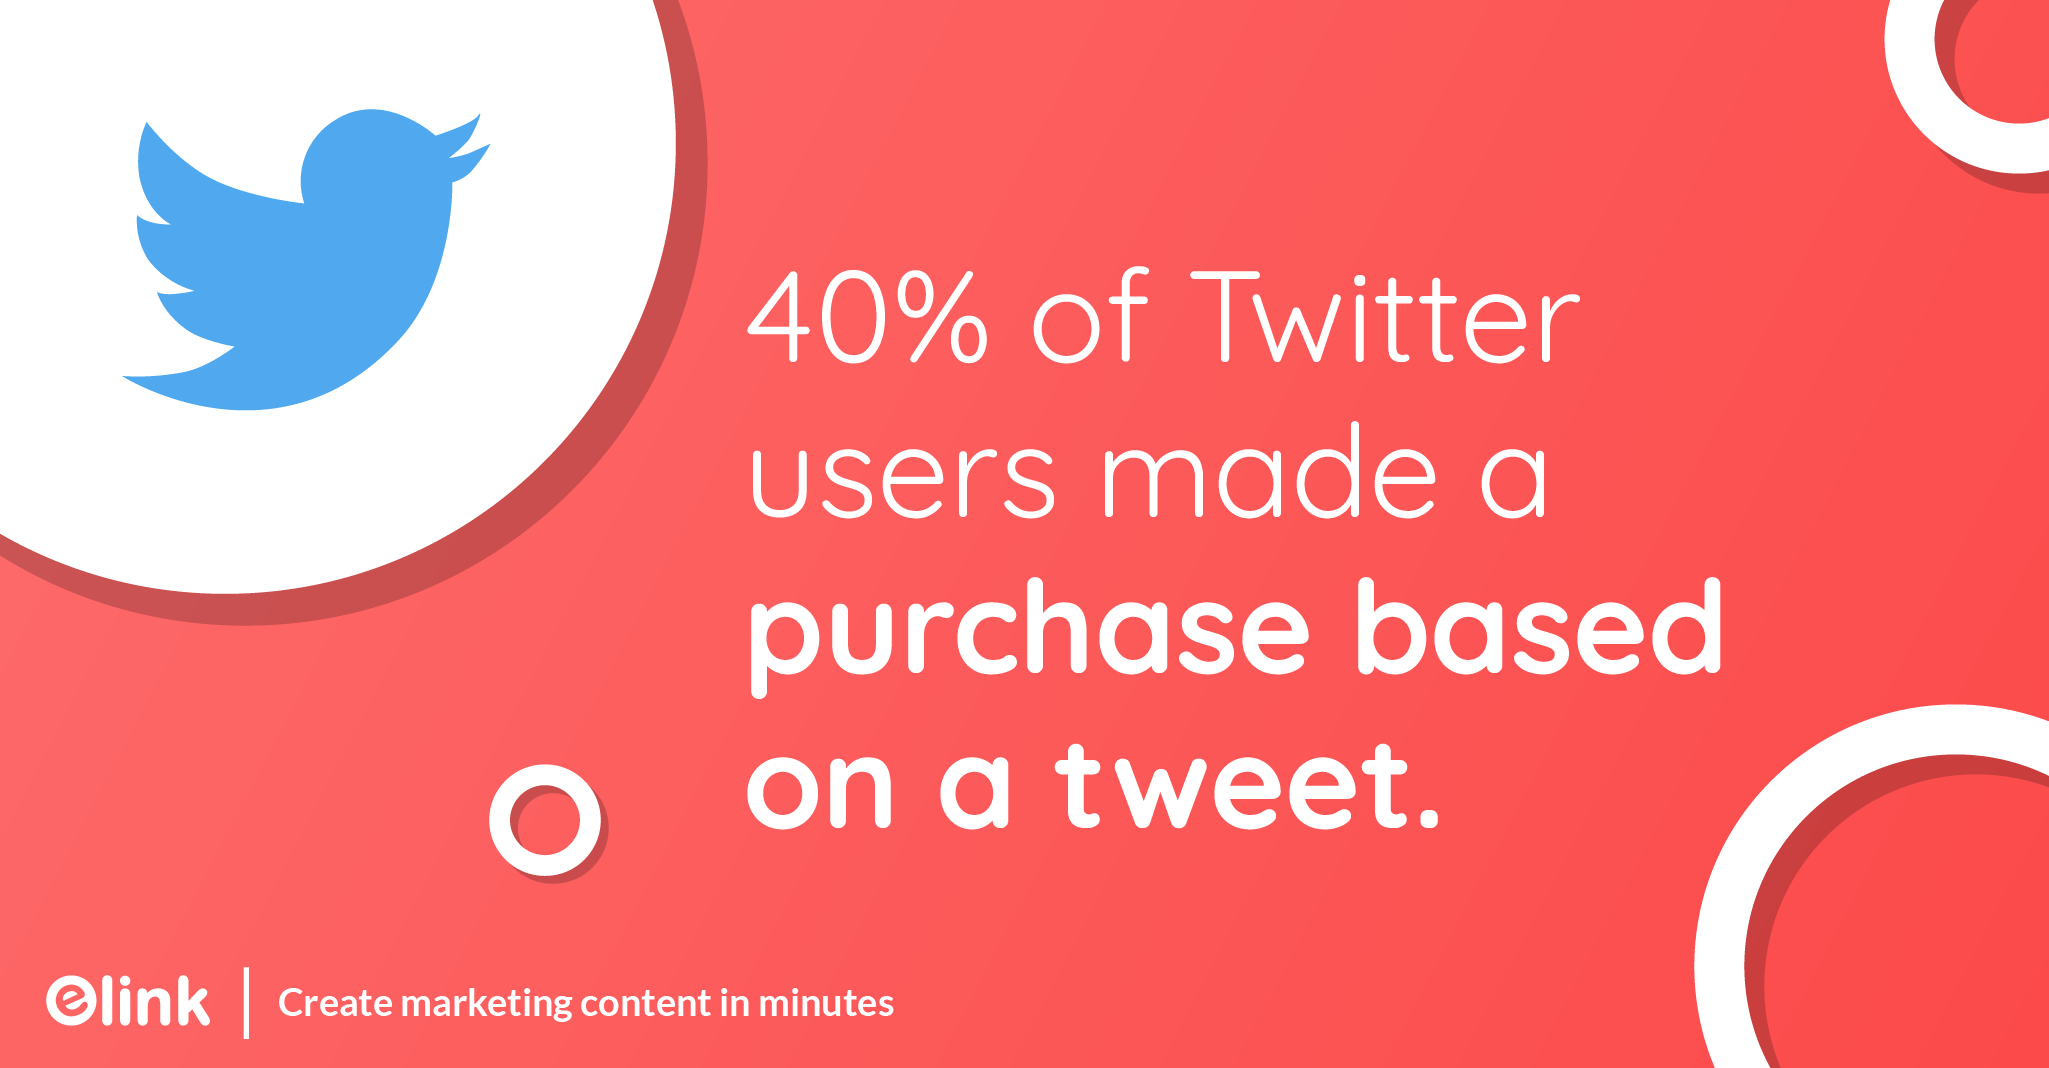 40% of Twitter users made a purchase based on a tweet.